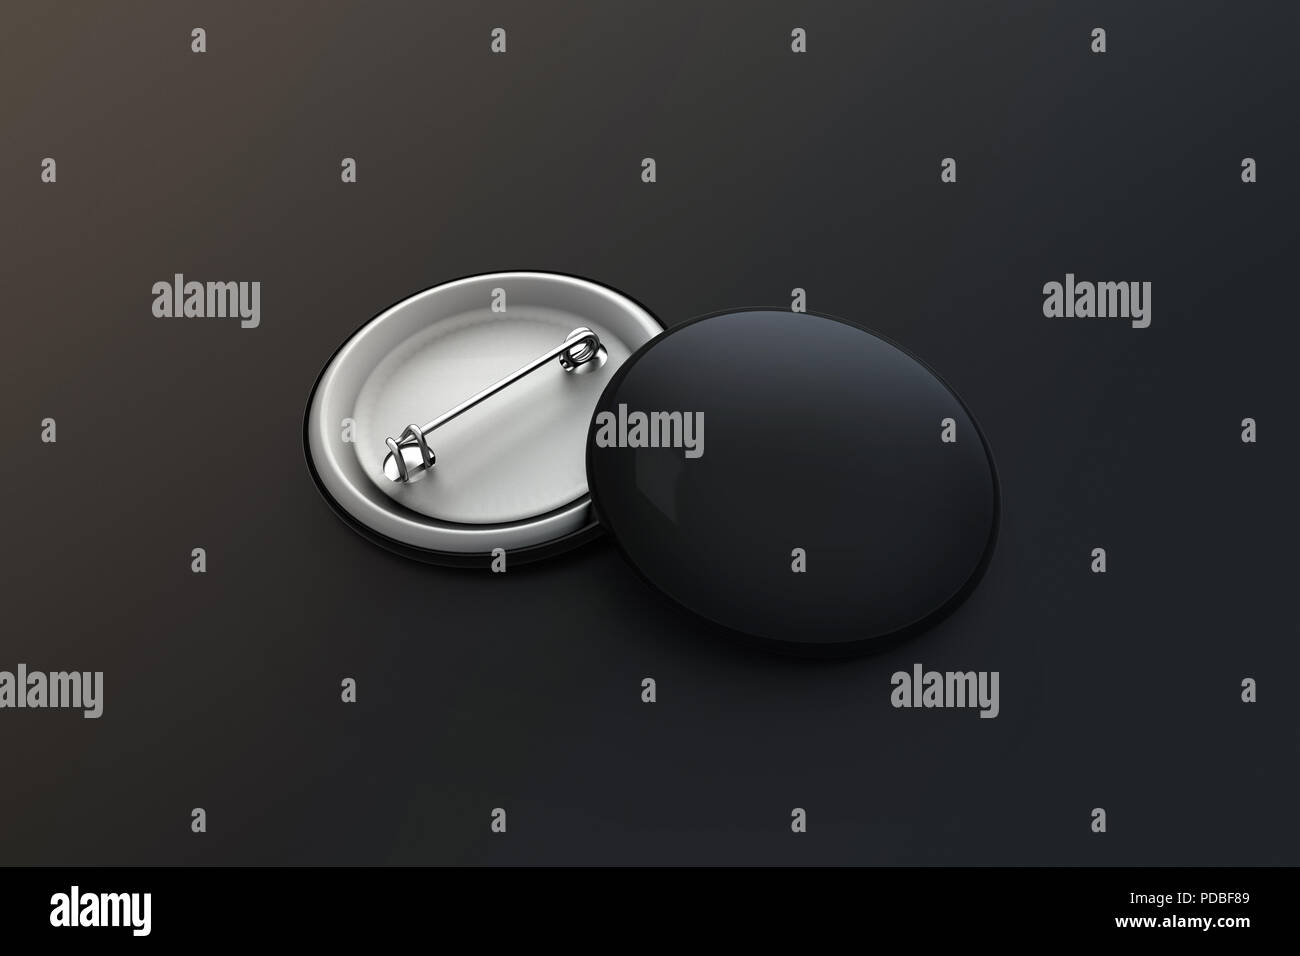 Blank black button badge stack mock up, clipping path, 3d rendering